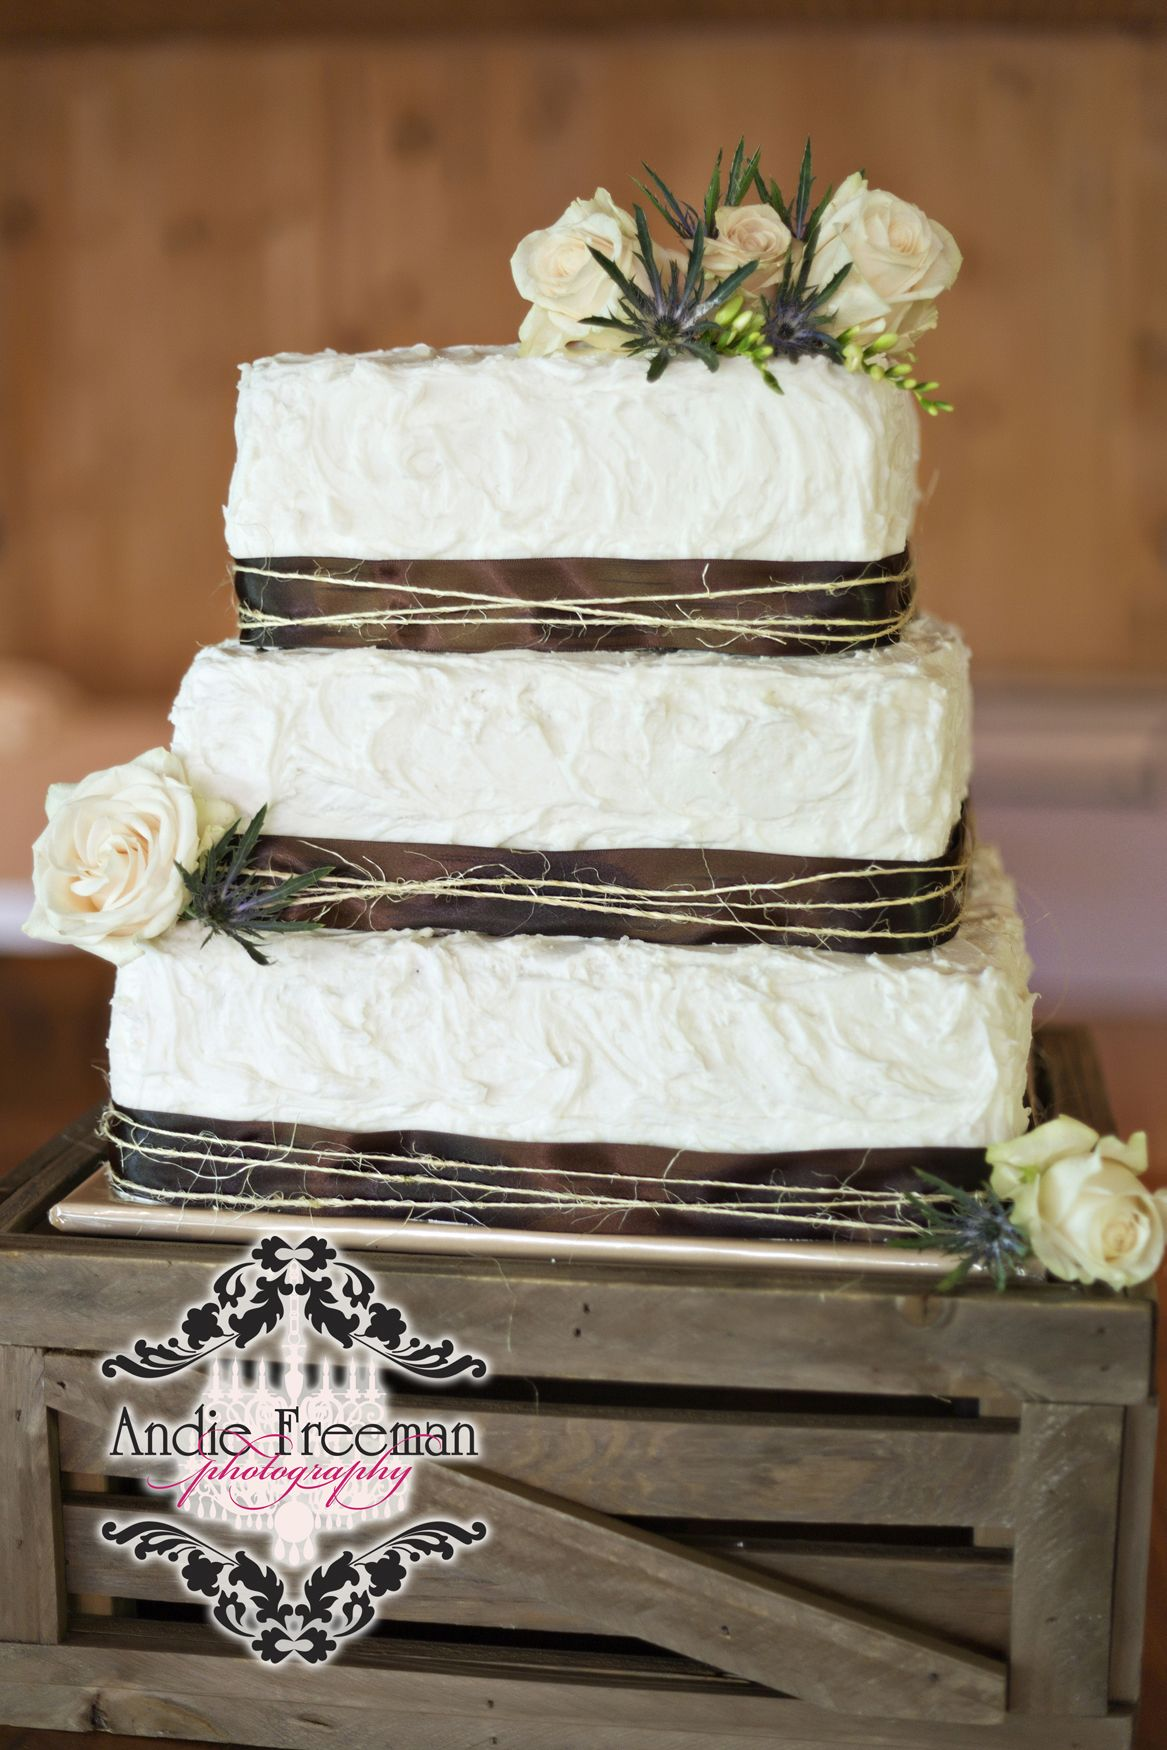 Country wedding cakes pictures - Cake